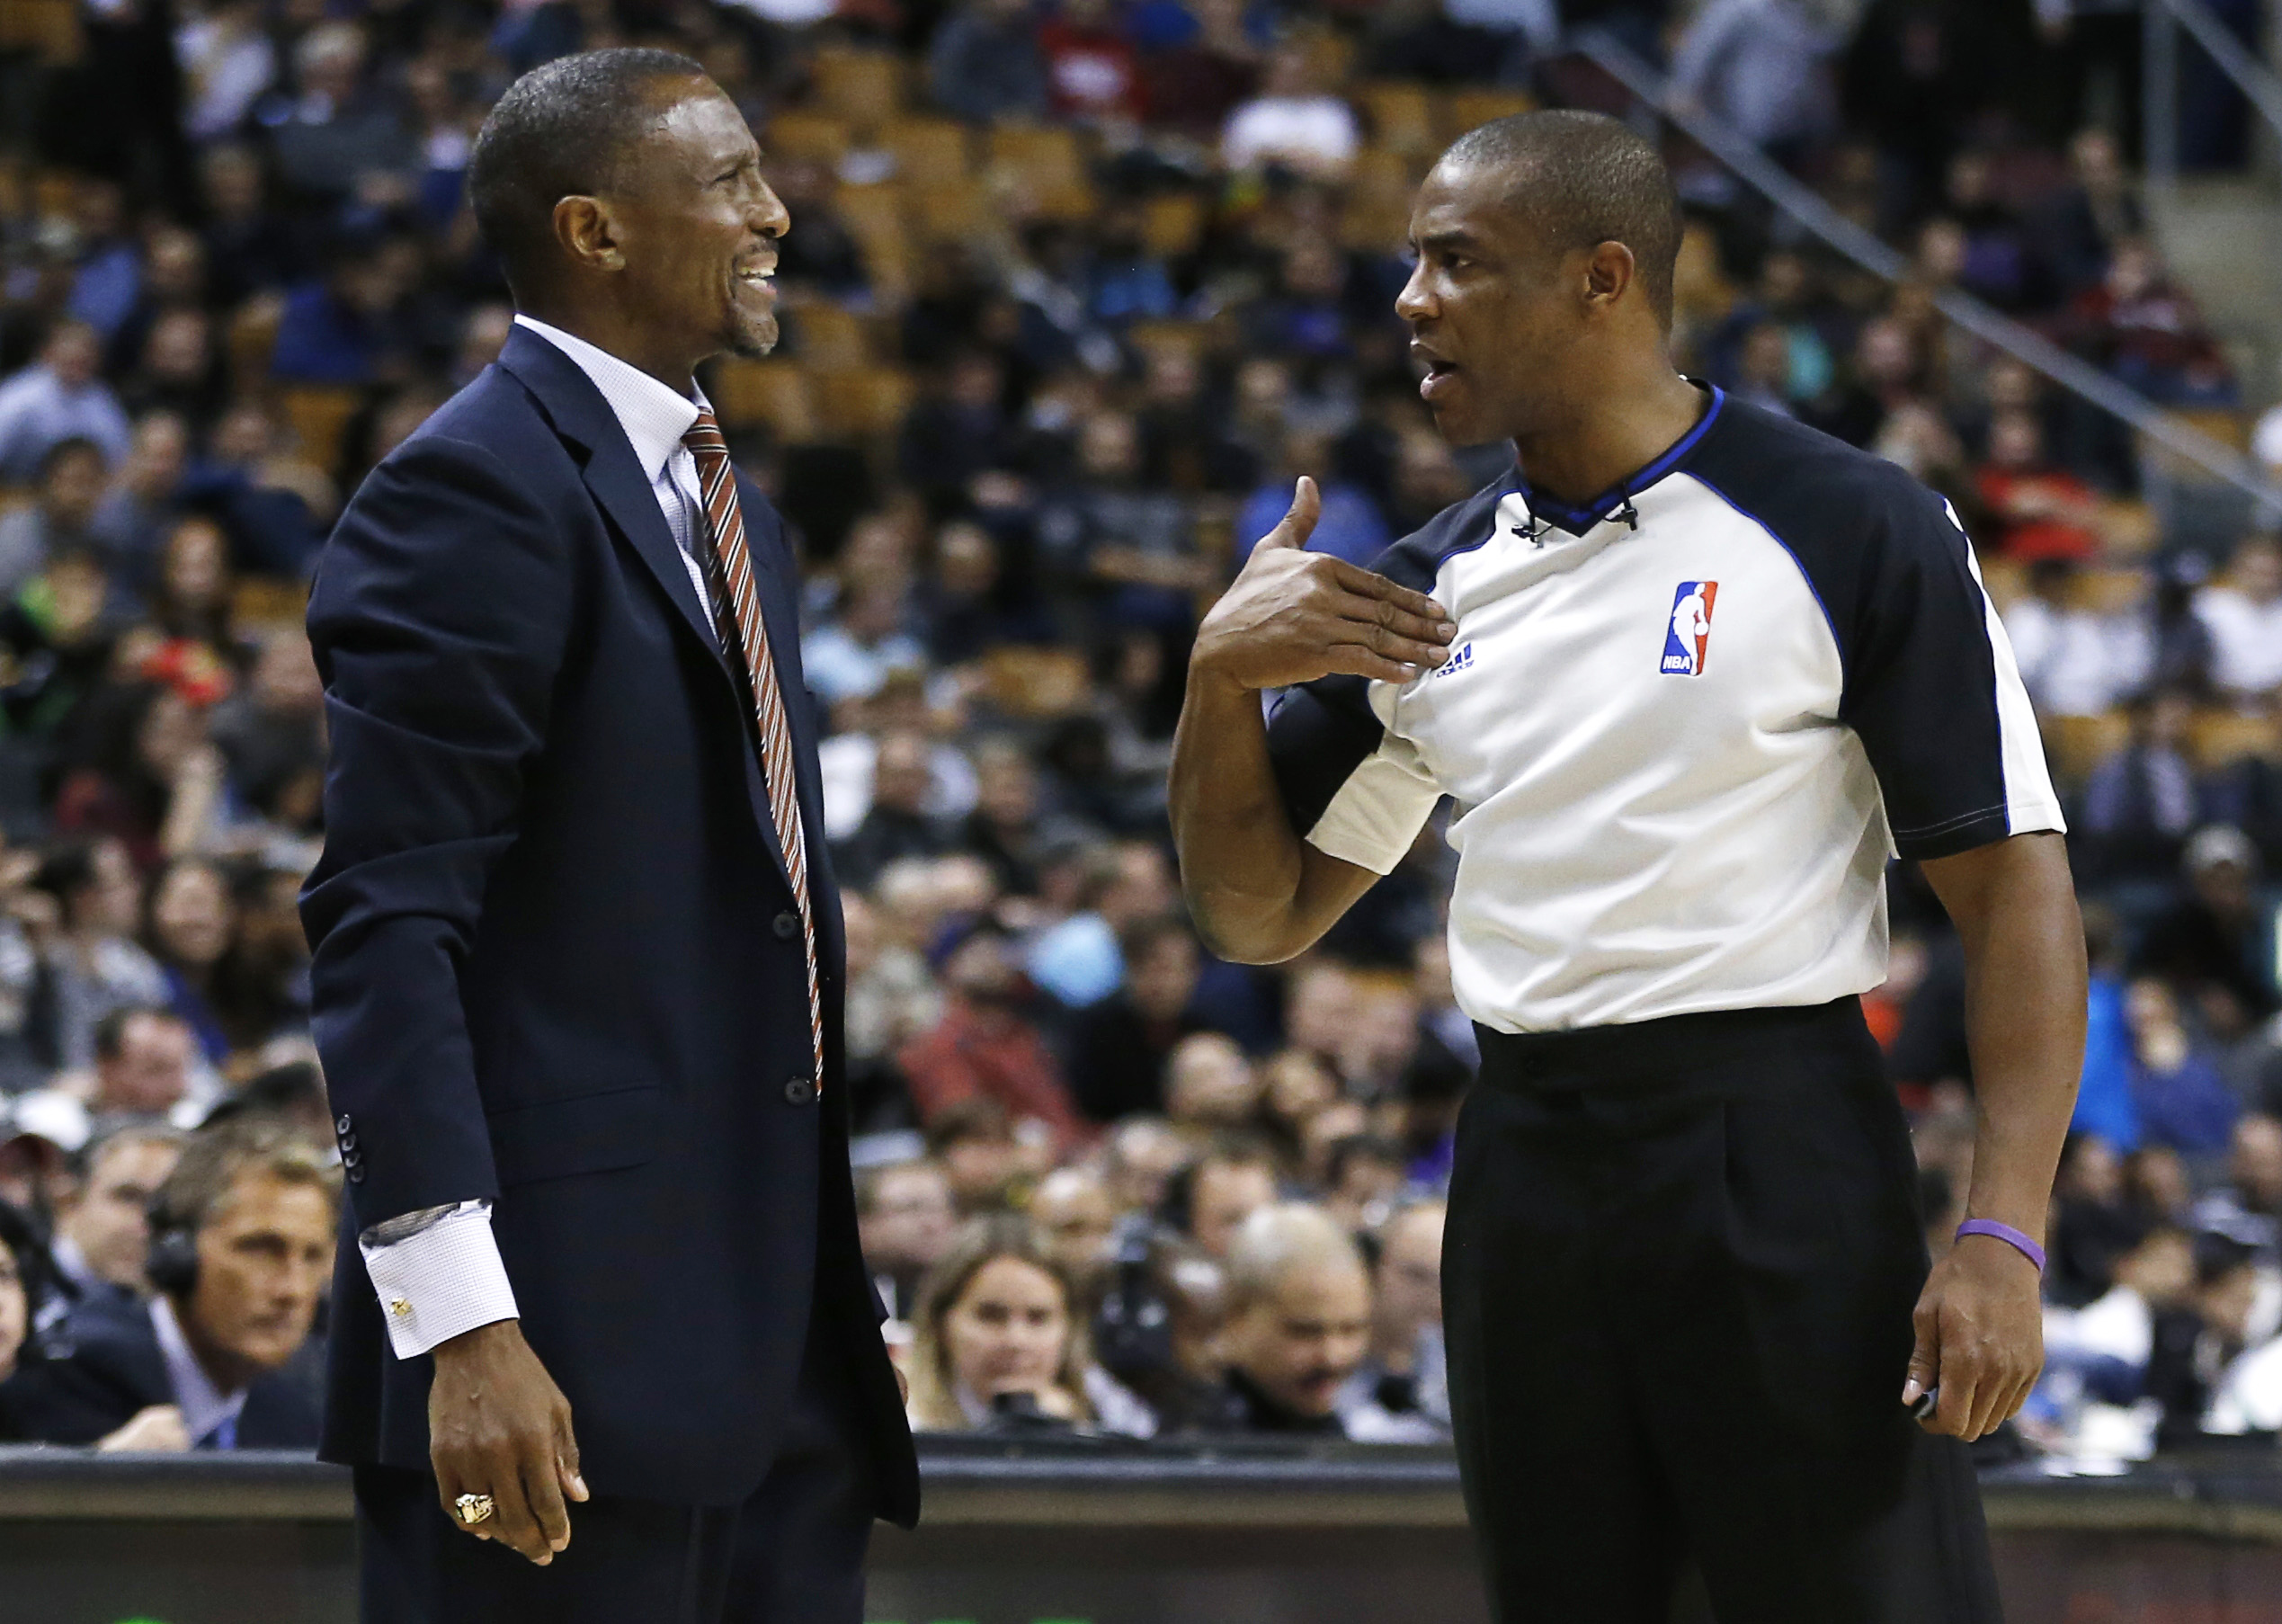 Toronto Raptors' head coach Dwane Casey complains to referee Tony Brown during a break in play against the Utah Jazz during the overtime of their NBA basketball game in Toronto November 12, 2012.     REUTERS/Mark Blinch /File Photo